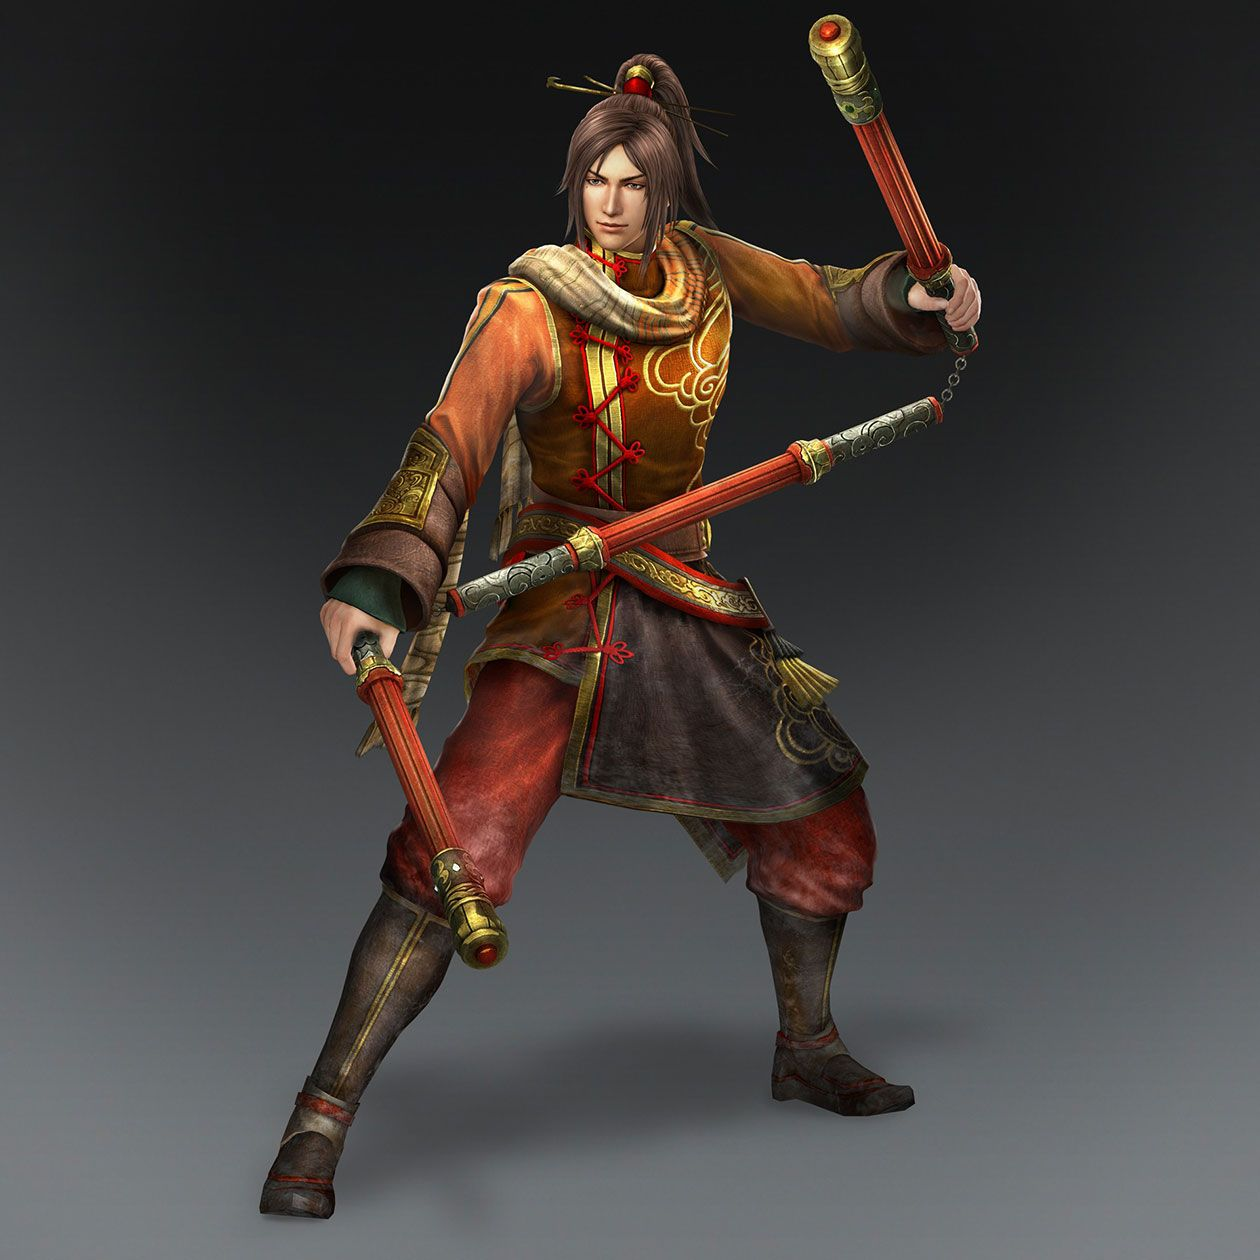 Warriors Orochi 3 World S End: Ling Tong & Weapon (Wu Forces)